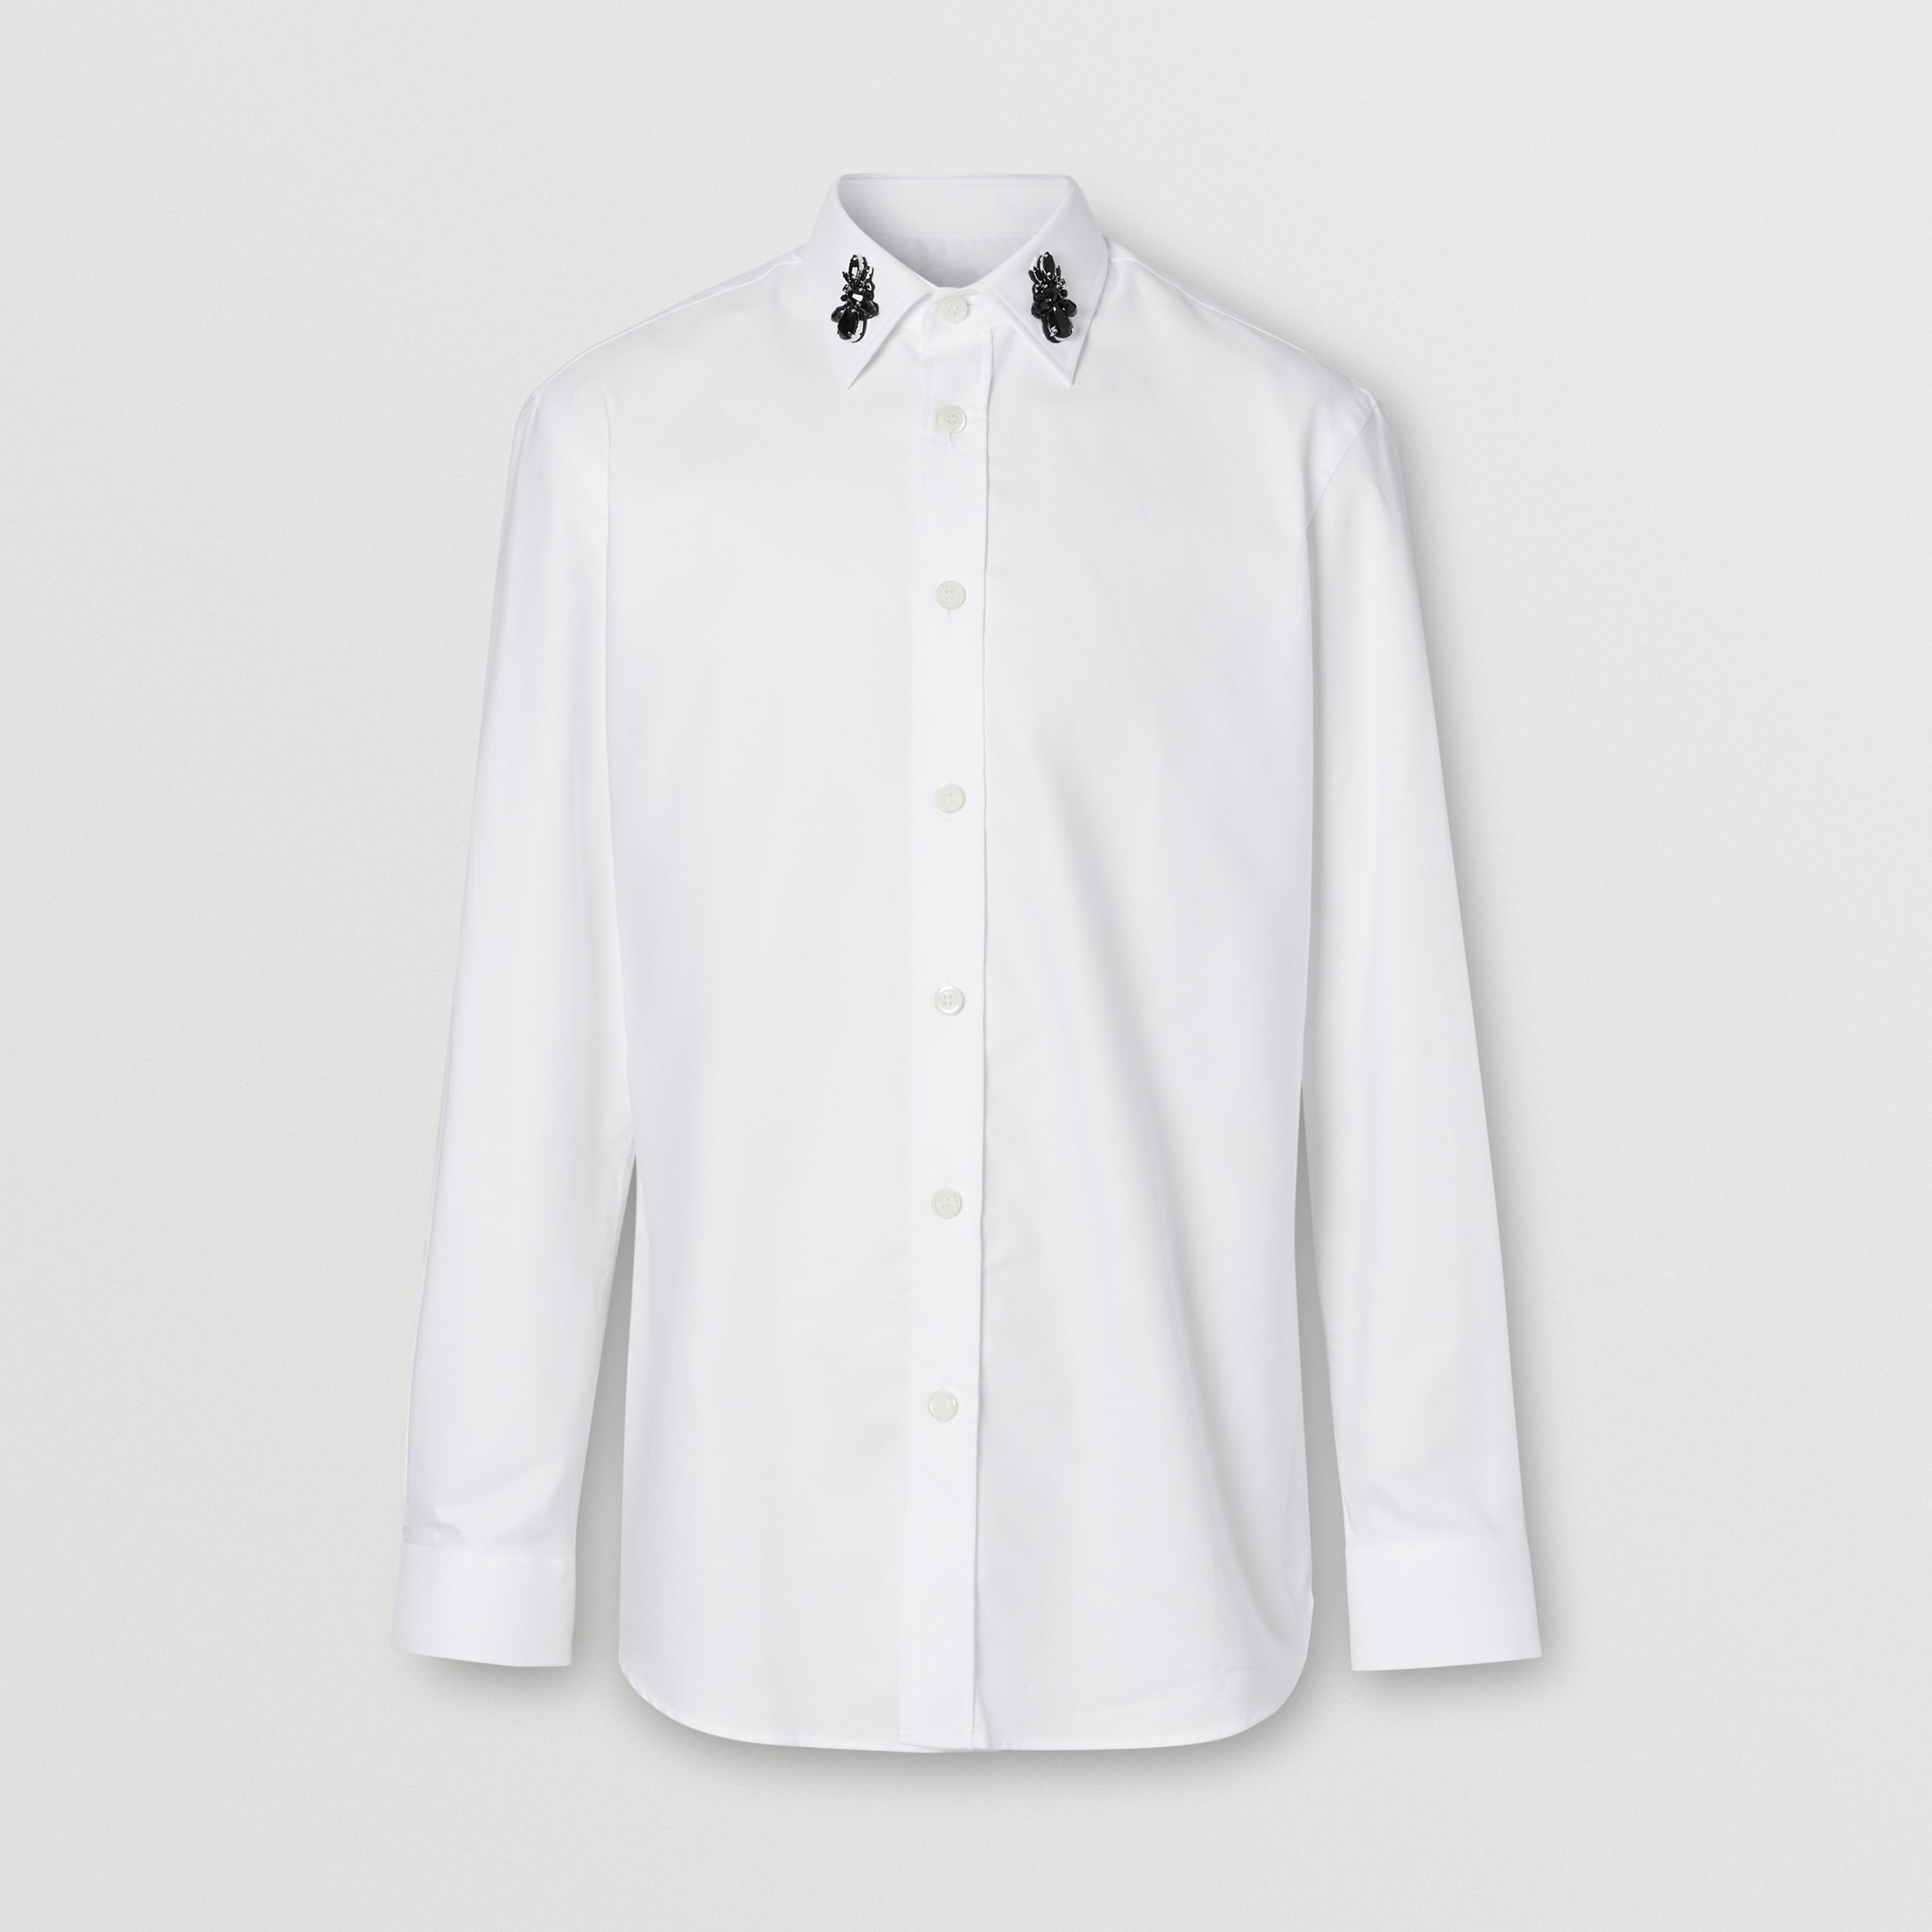 Classic Fit Crystal Detail Cotton Oxford Dress Shirt in White - Men | Burberry - 4